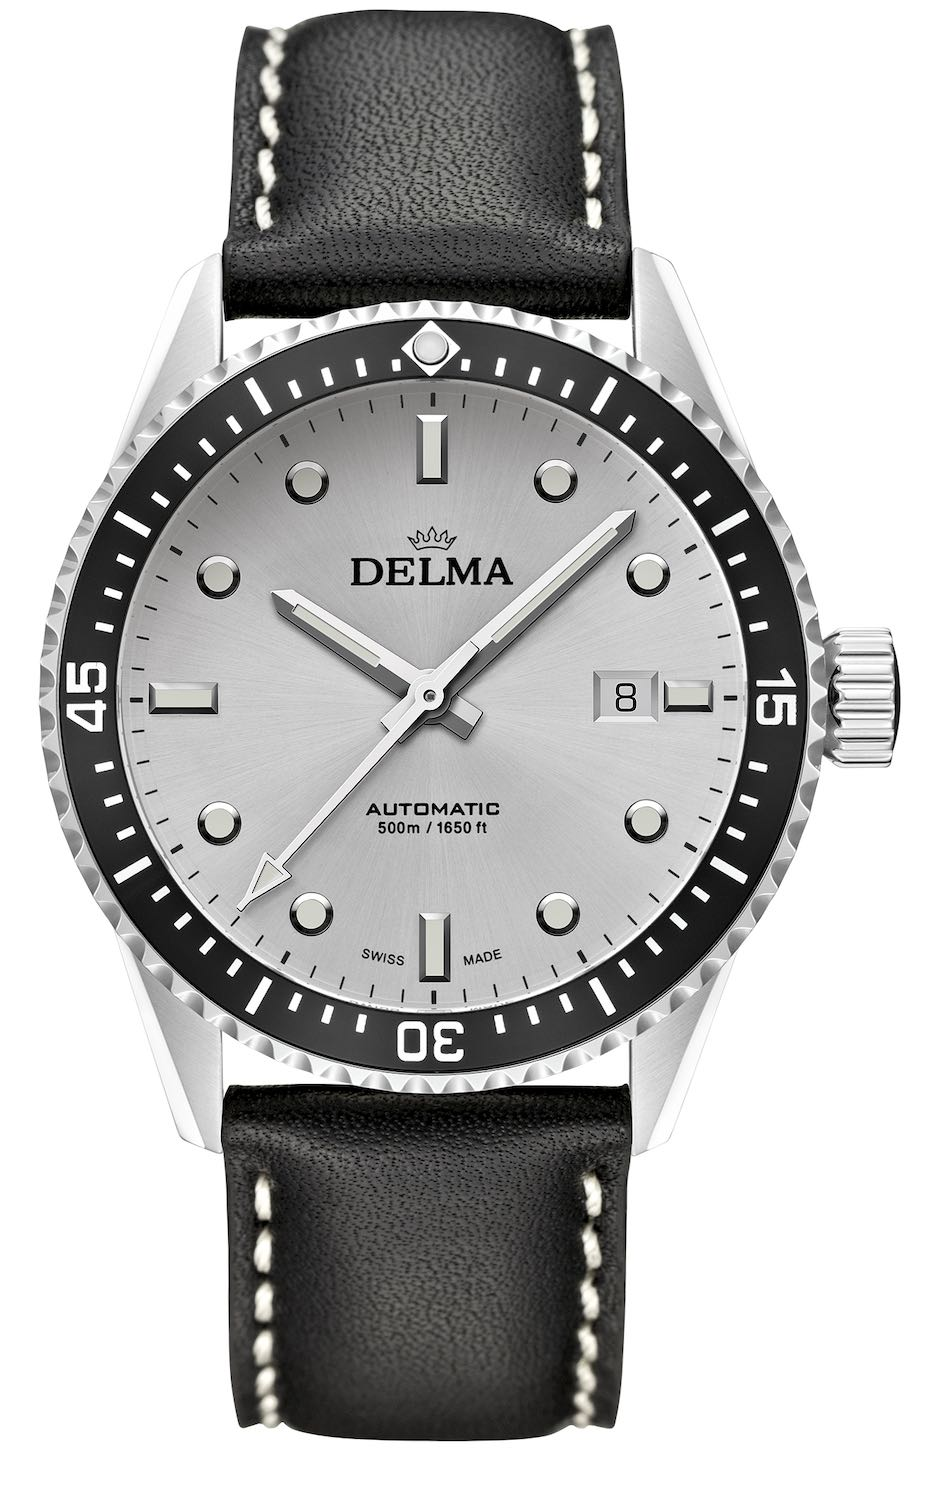 Delma Cayman Automatic - Value Proposition Diver - 5